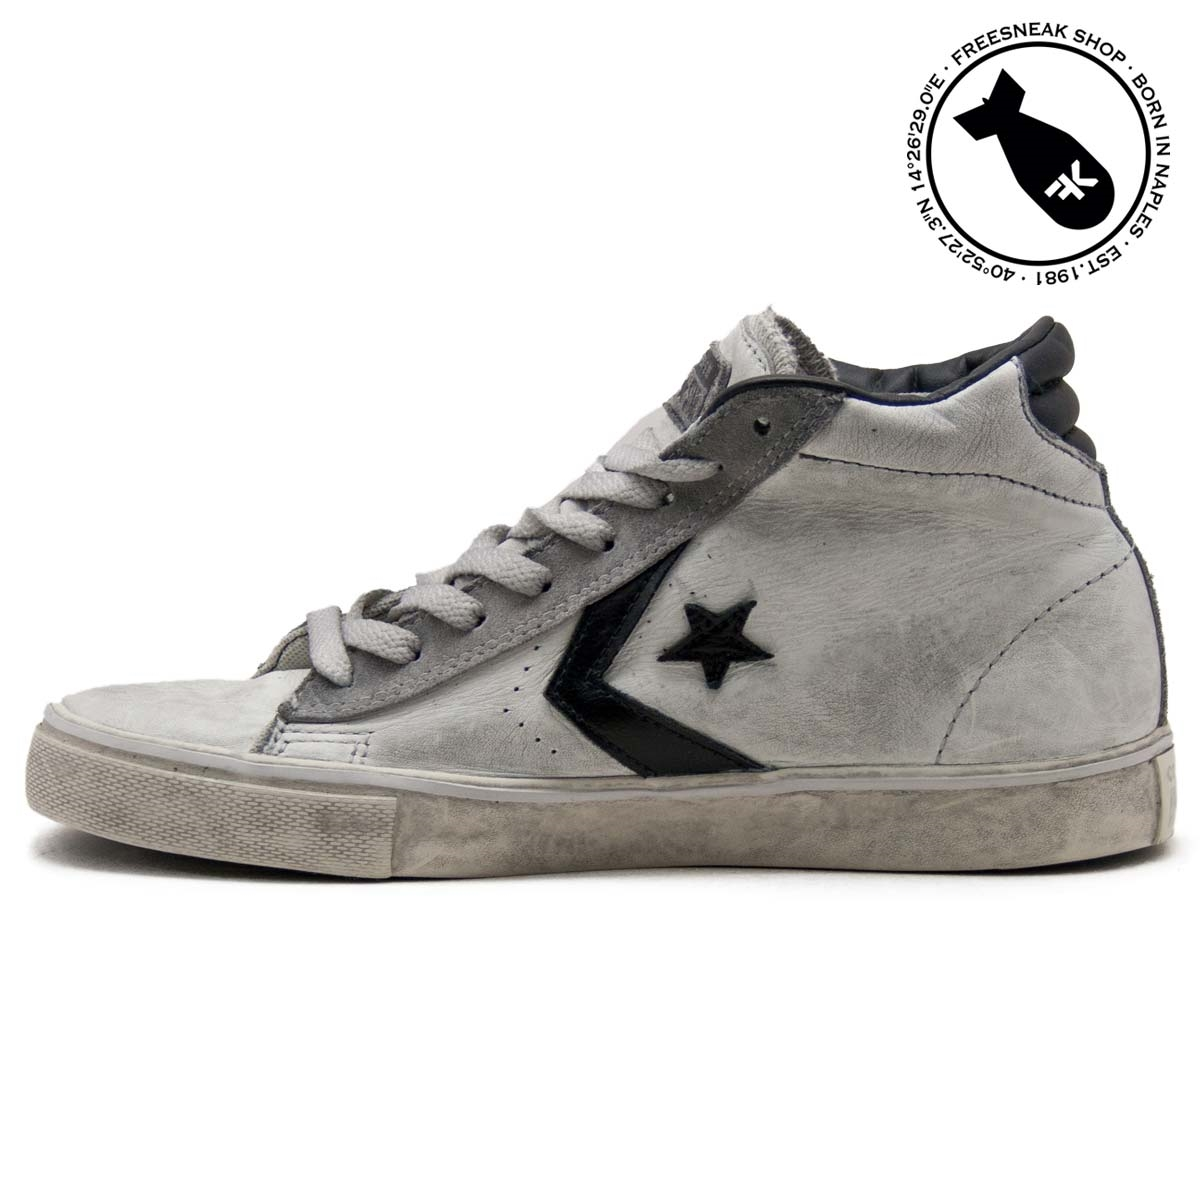 00b3d41bfc245a Sneakers Converse Pro Leather Limited Edition White 162904C. CONVERSE  162904C. CONVERSE 162904C. CONVERSE 162904C. CONVERSE 162904C